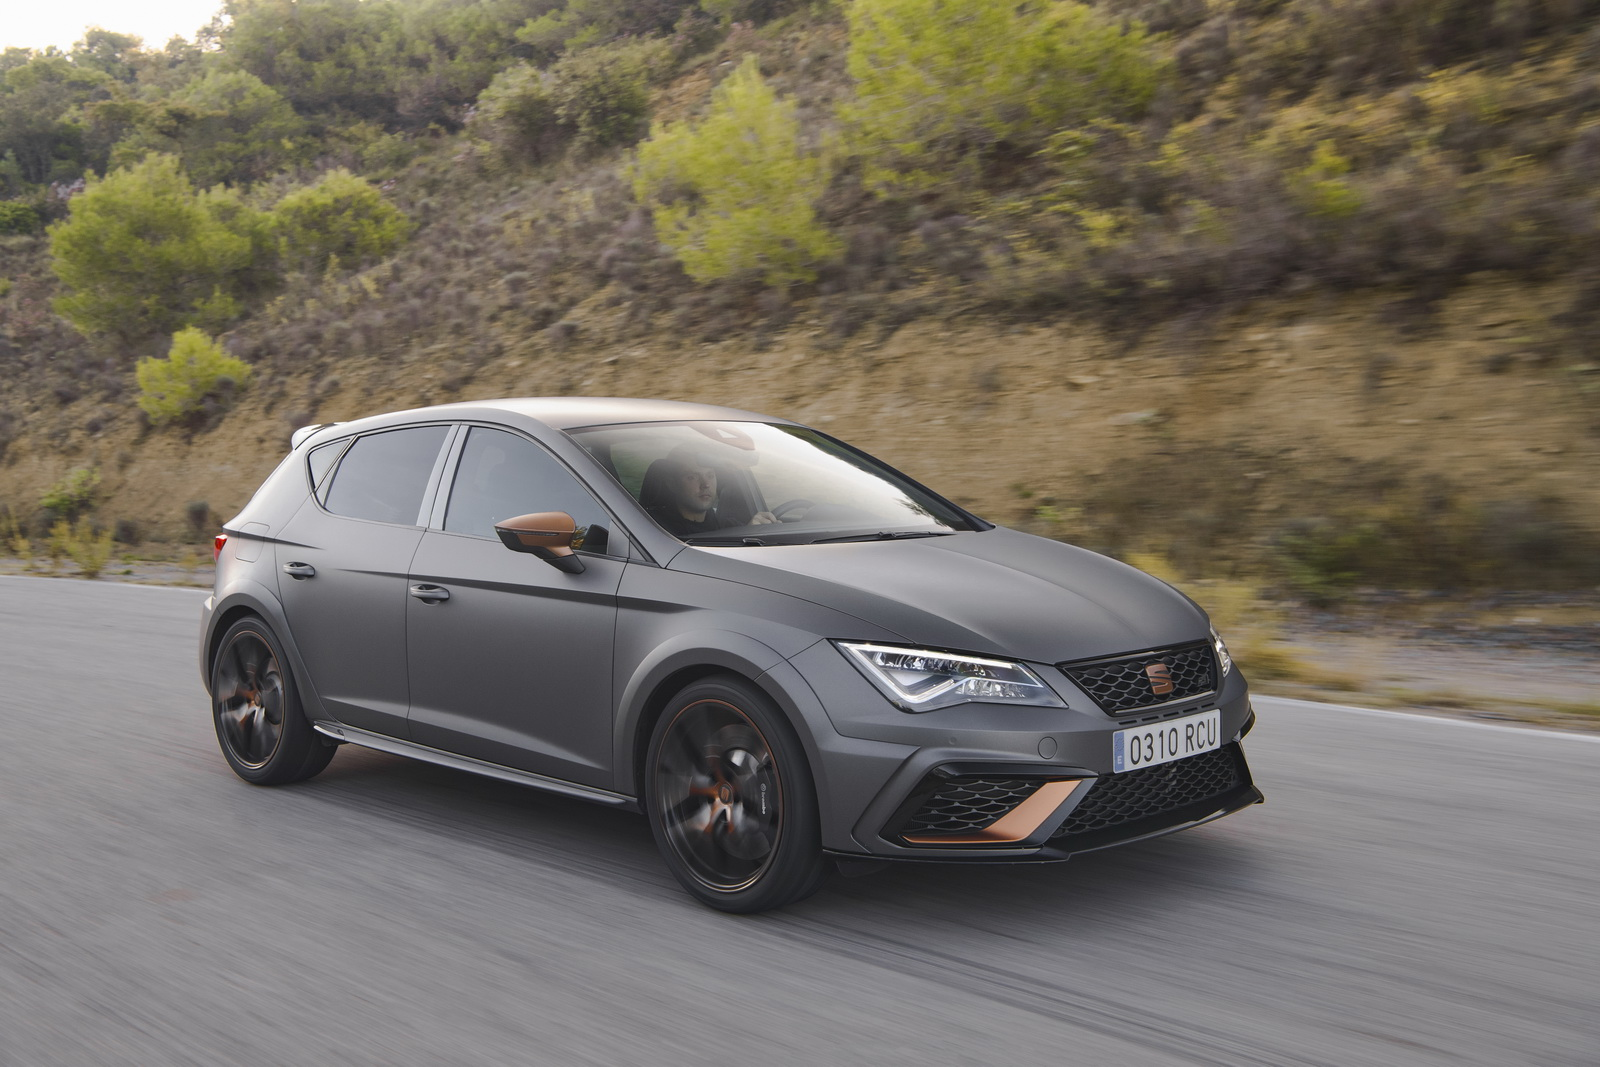 seat leon cupra r detailed in new gallery 43 pics. Black Bedroom Furniture Sets. Home Design Ideas